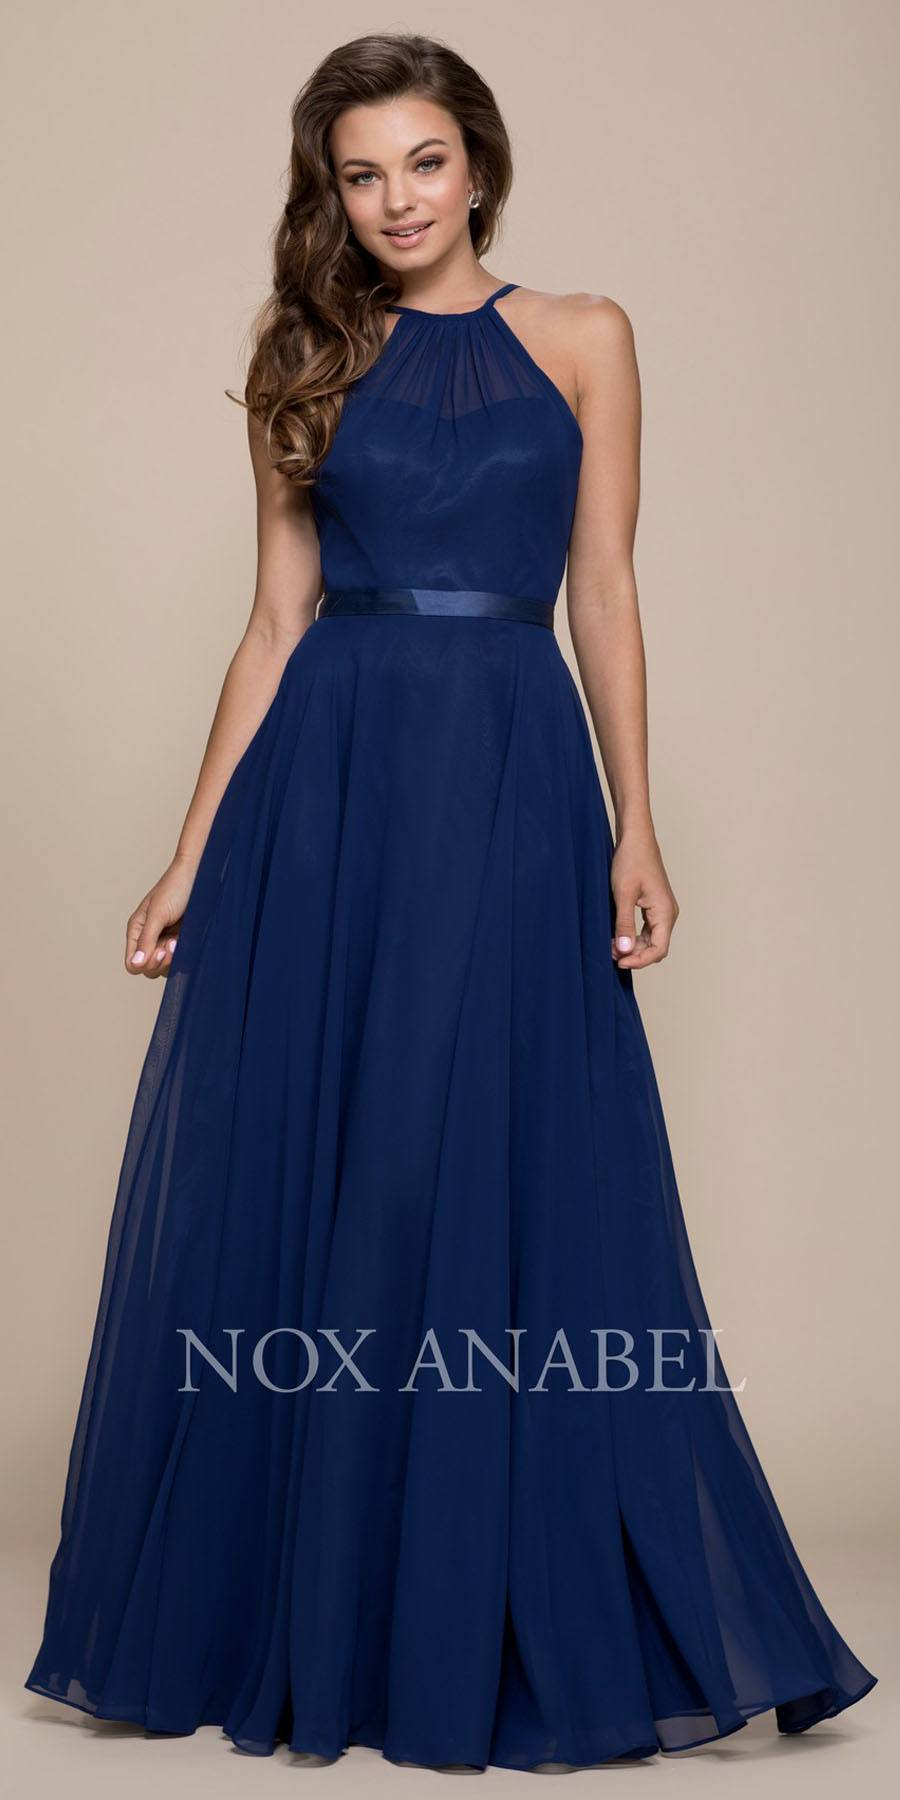 91642f16a Nox Anabel Y102 Navy Blue Halter A-line Bridesmaid Gown Corset Lace ...